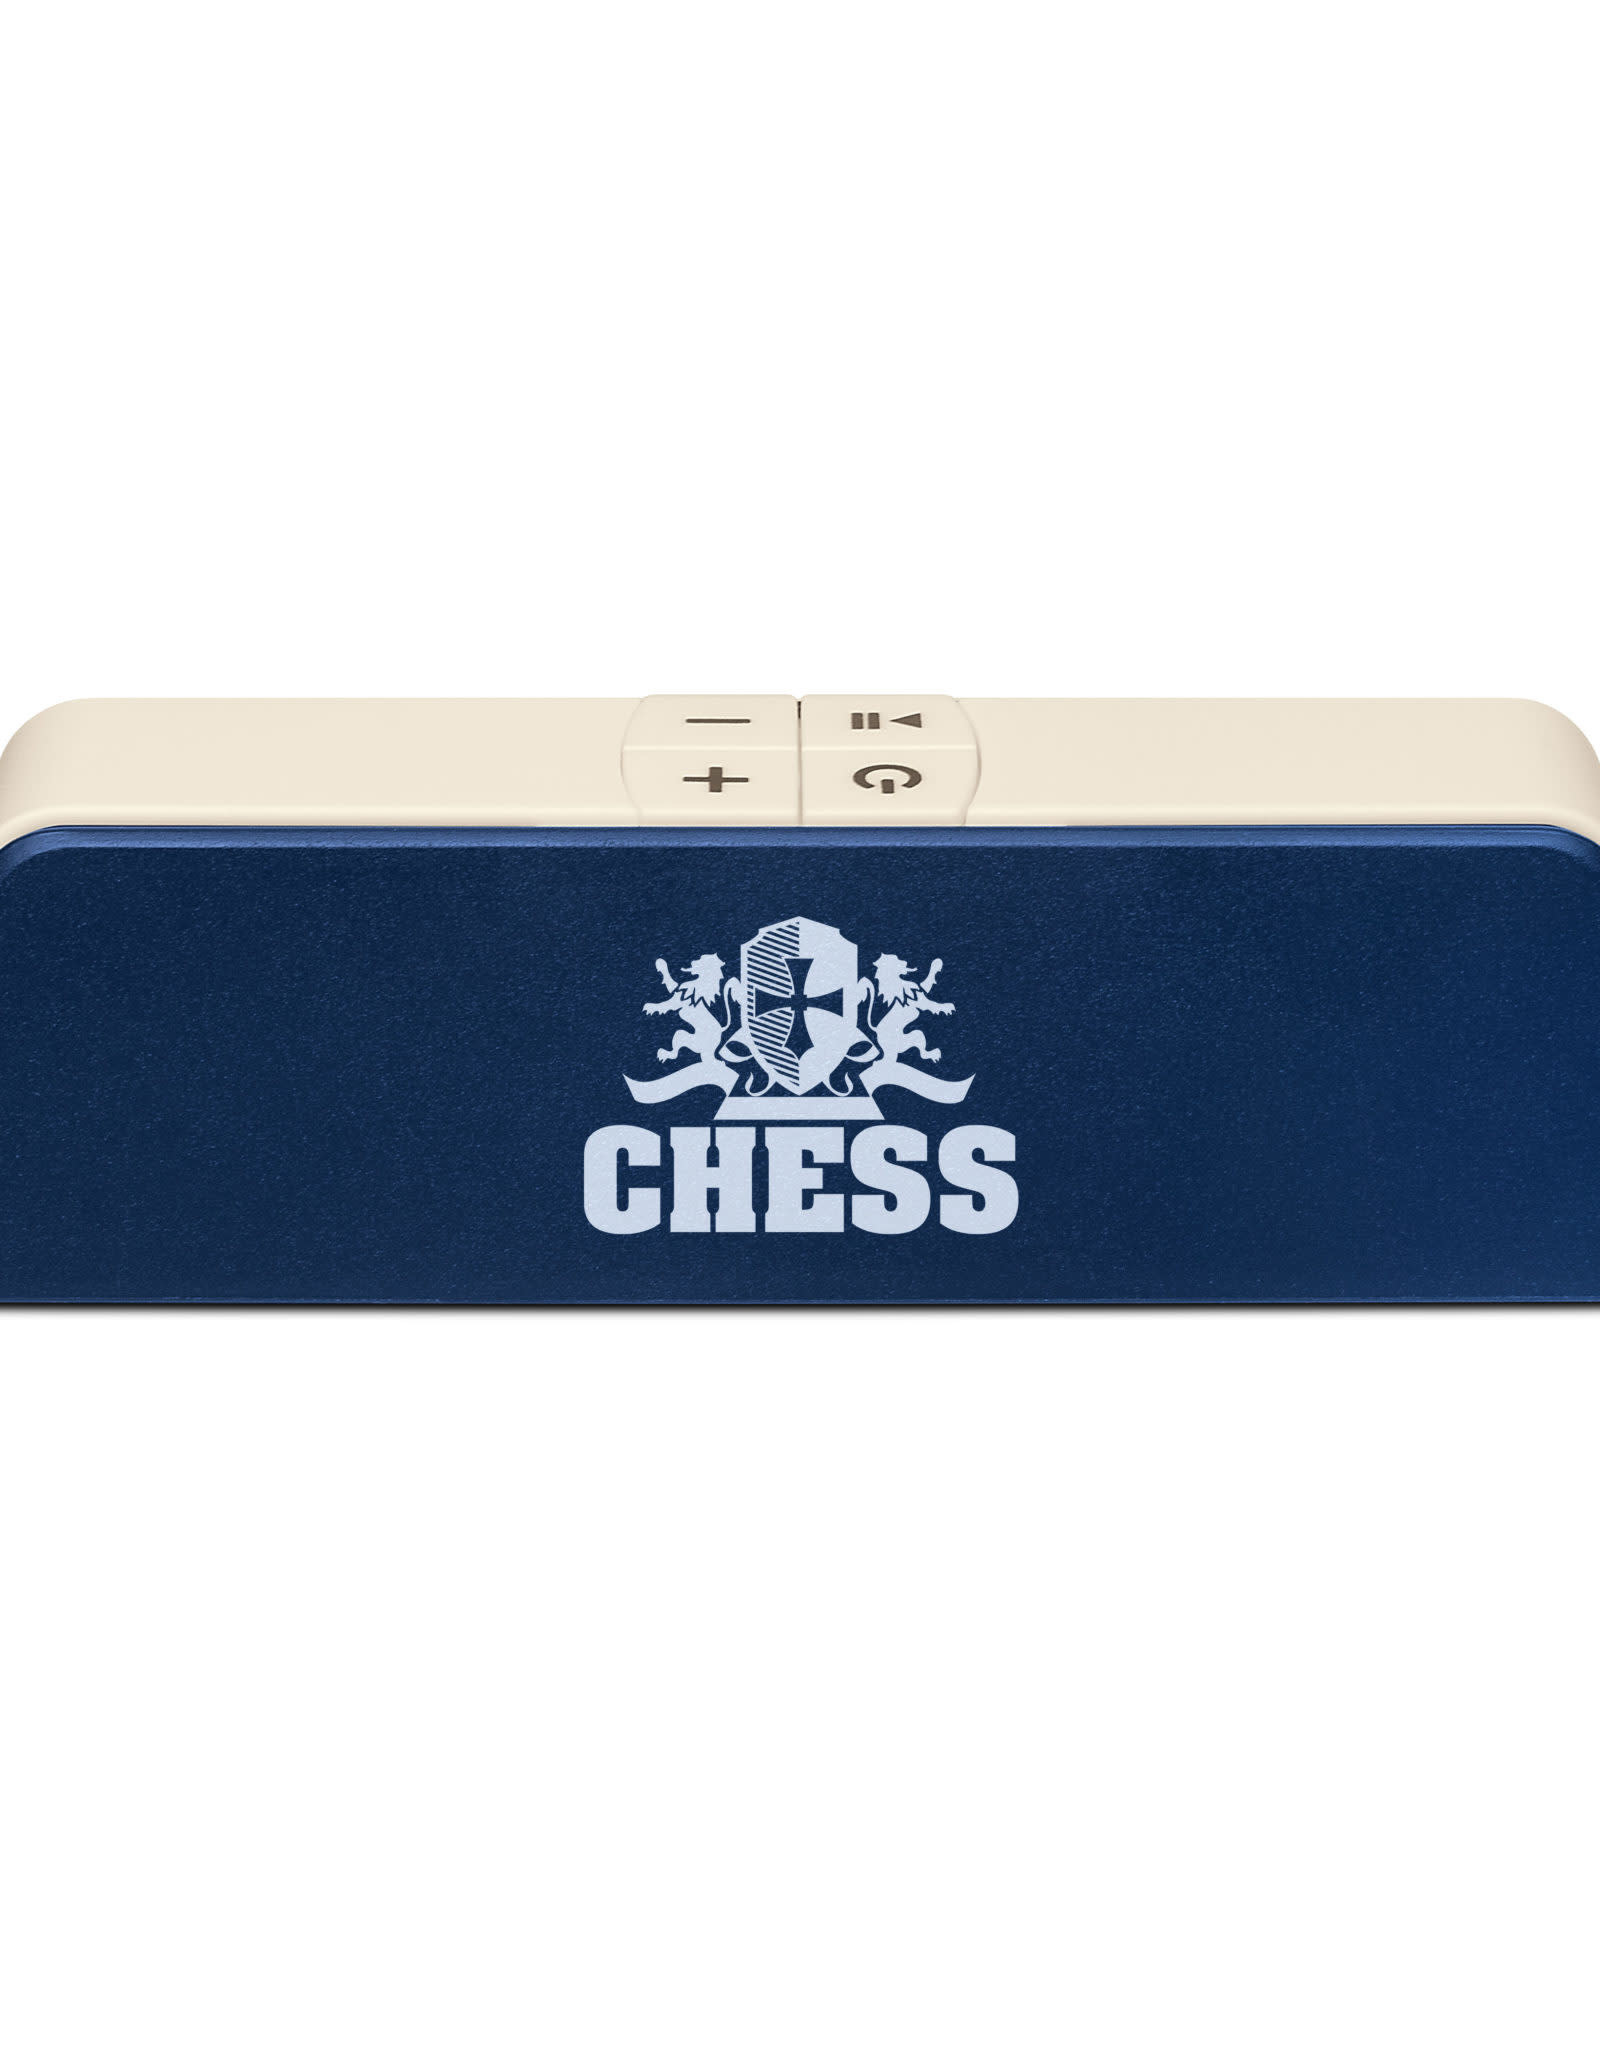 Chess Timer: Digital